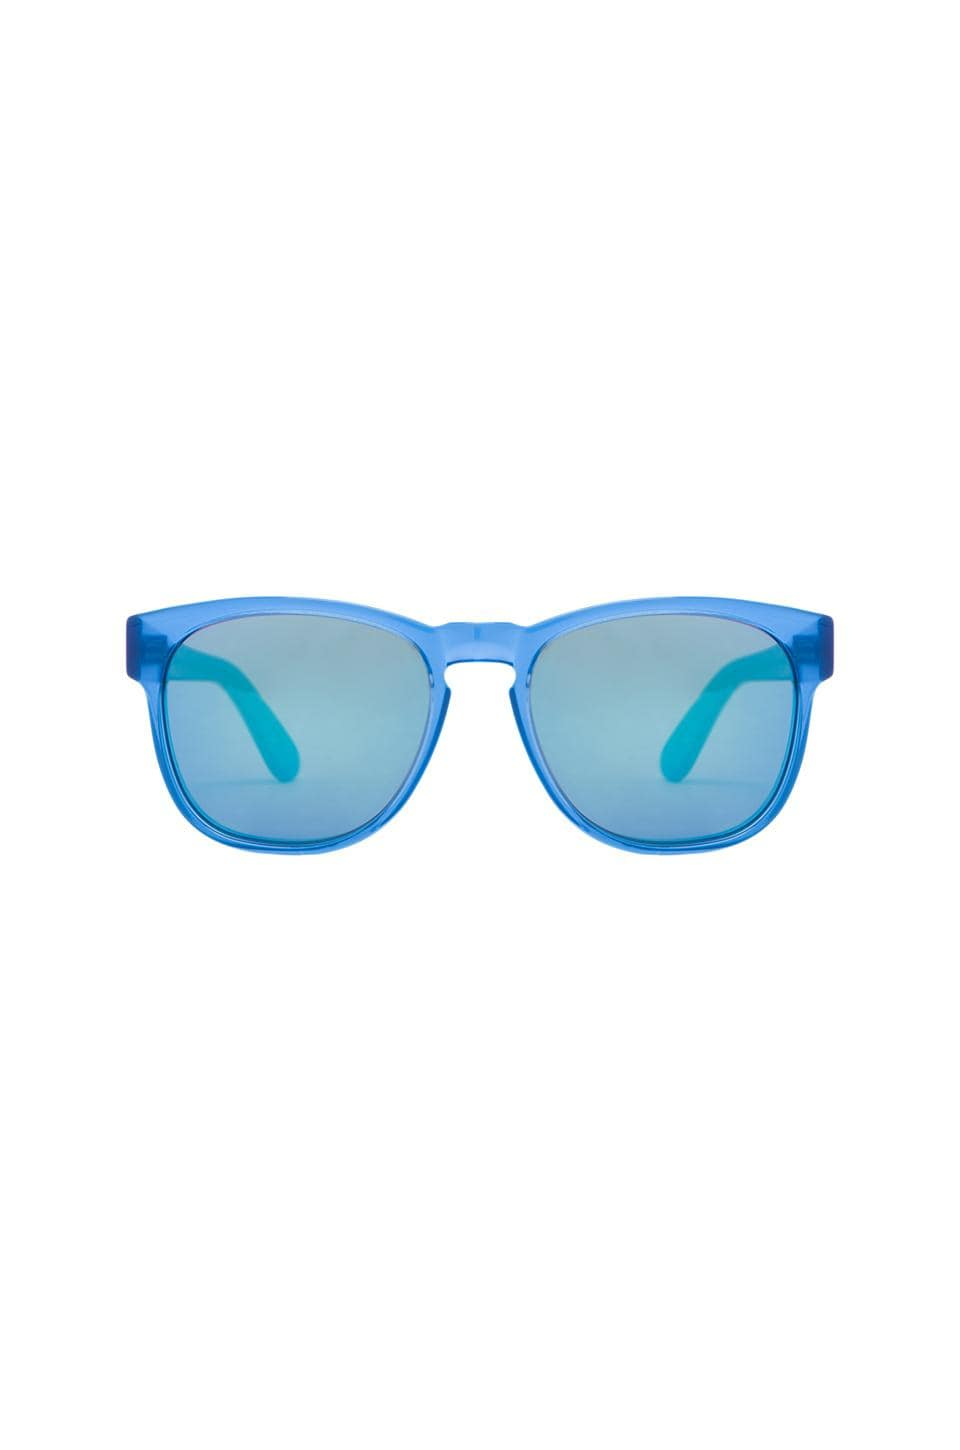 Wildfox Couture Classic Fox 2 Sunglasses in Blue